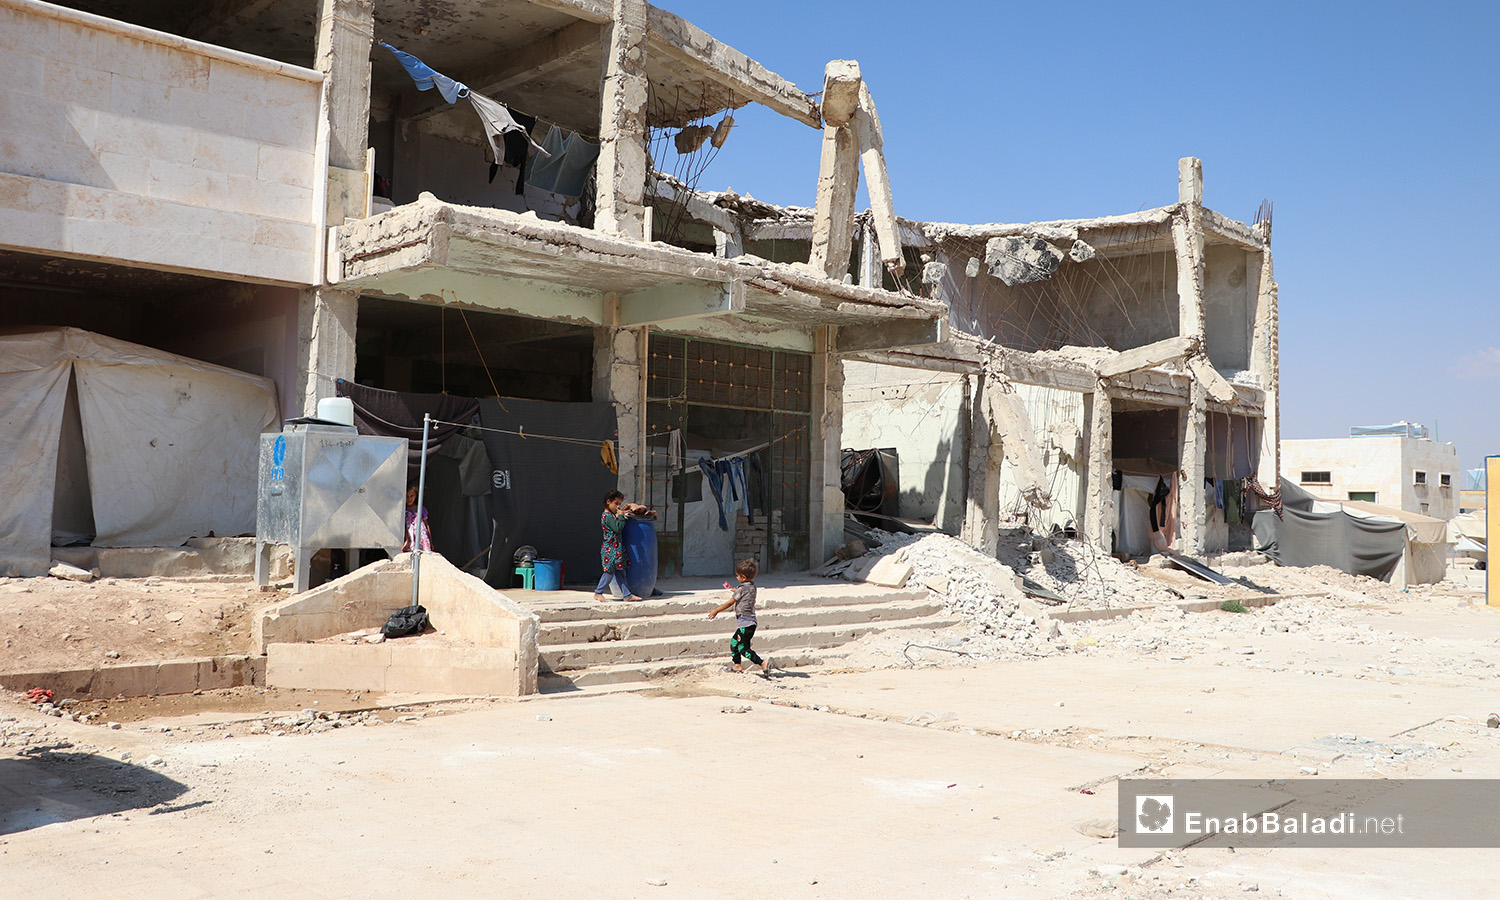 """Displaced people live in a partially destroyed house in """"Qubtan"""" camp near the town of Akhtarin in the northern countryside of Aleppo - 17 July 2020 (Enab Baladi / Asem al-Melhem)"""